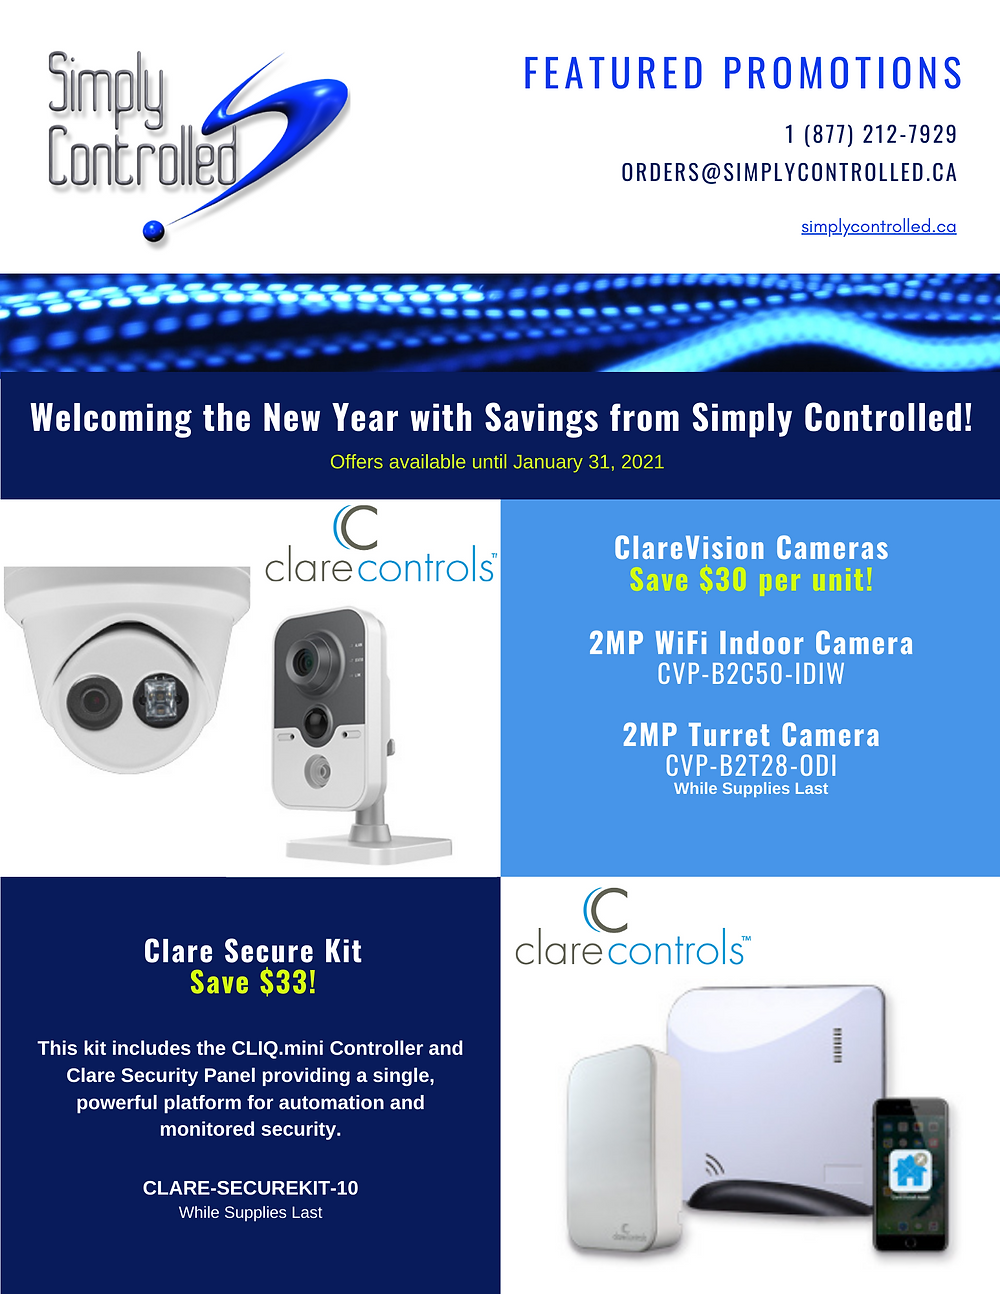 Clare Controls, Security, Security Promotion, Clare Secure, ClareVision